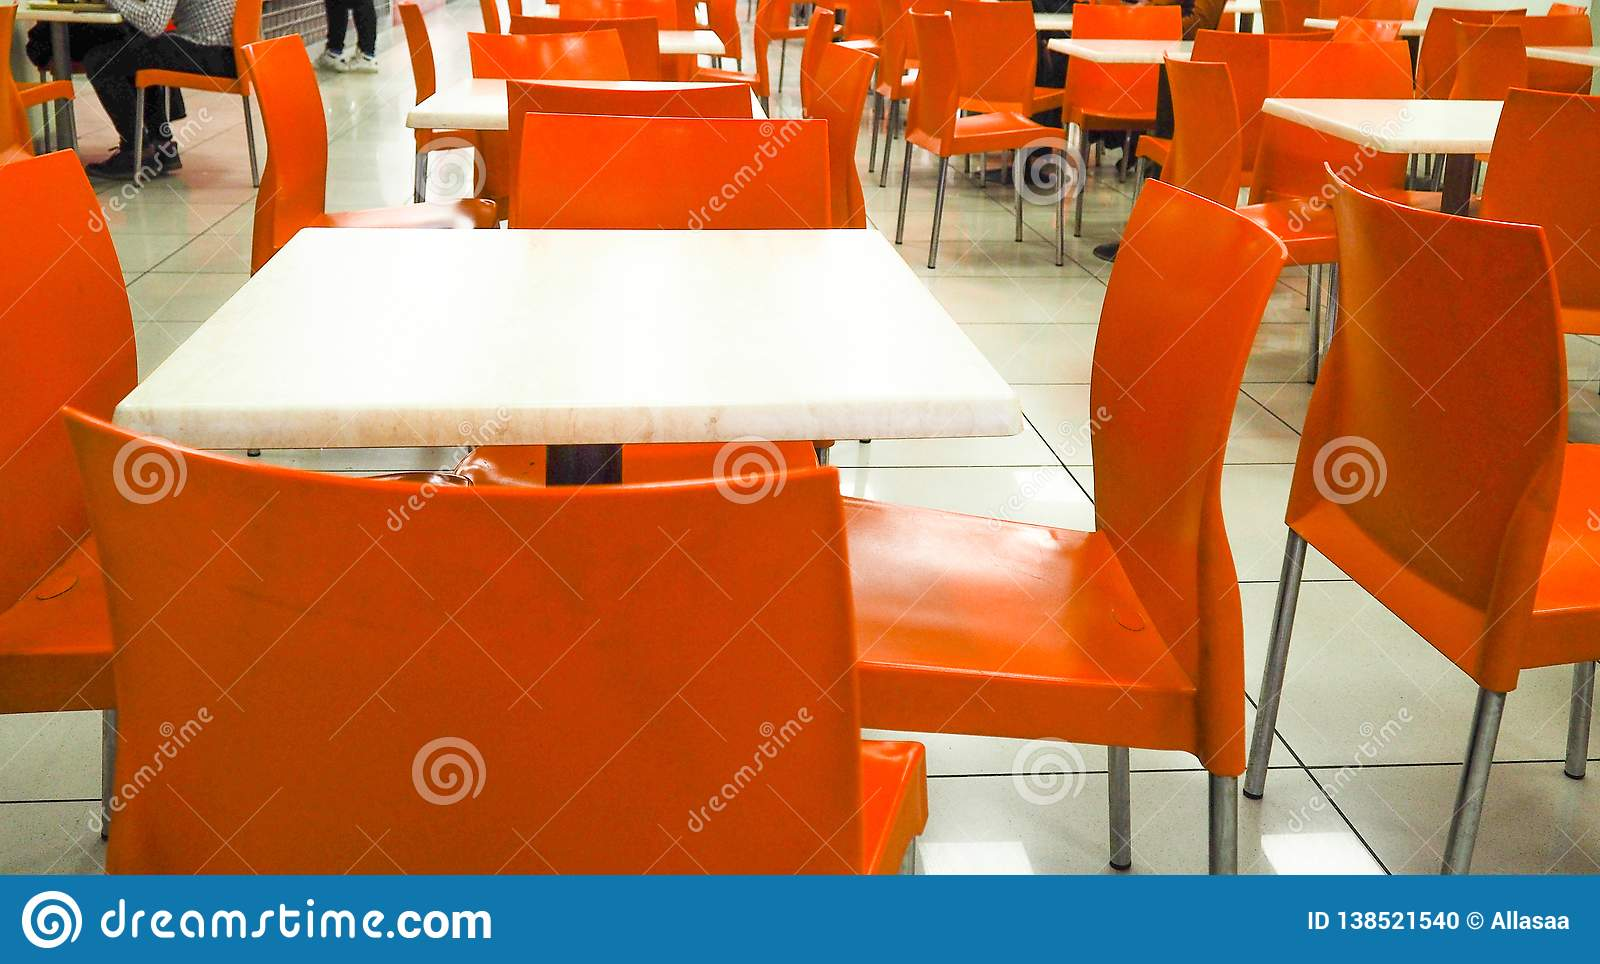 Empty Yellow Color Chairs Arranged In The Row With The Blurred People Background In The Hall Dining Room With Orange Chairs Stock Photo Image Of Furniture Bright 138521540